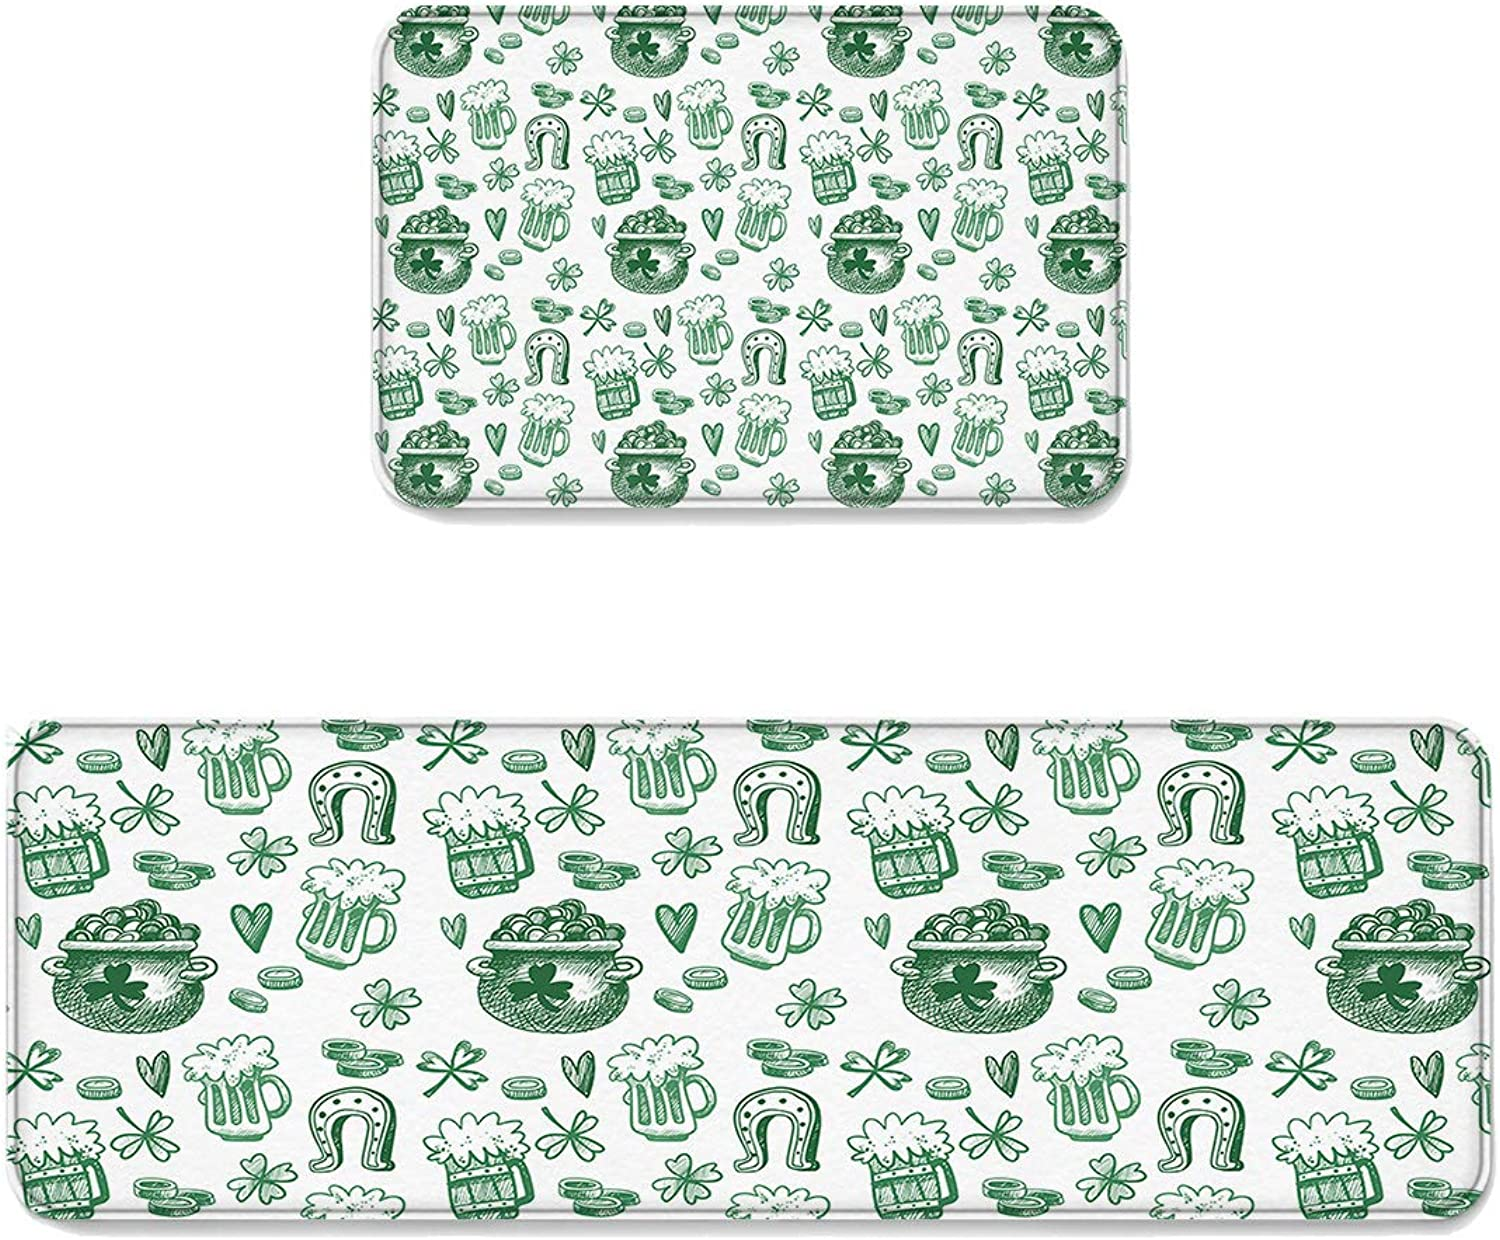 Kitchen Rug Sets 2 Piece Floor Mats Non-Slip Rubber Backing Area Rugs St Patrick's Day Hand Drawn Graffiti gold Coin Beer Doormat Washable Carpet Inside Door Mat Pad Sets (19.7  x 31.5 +19.7  x 63 )